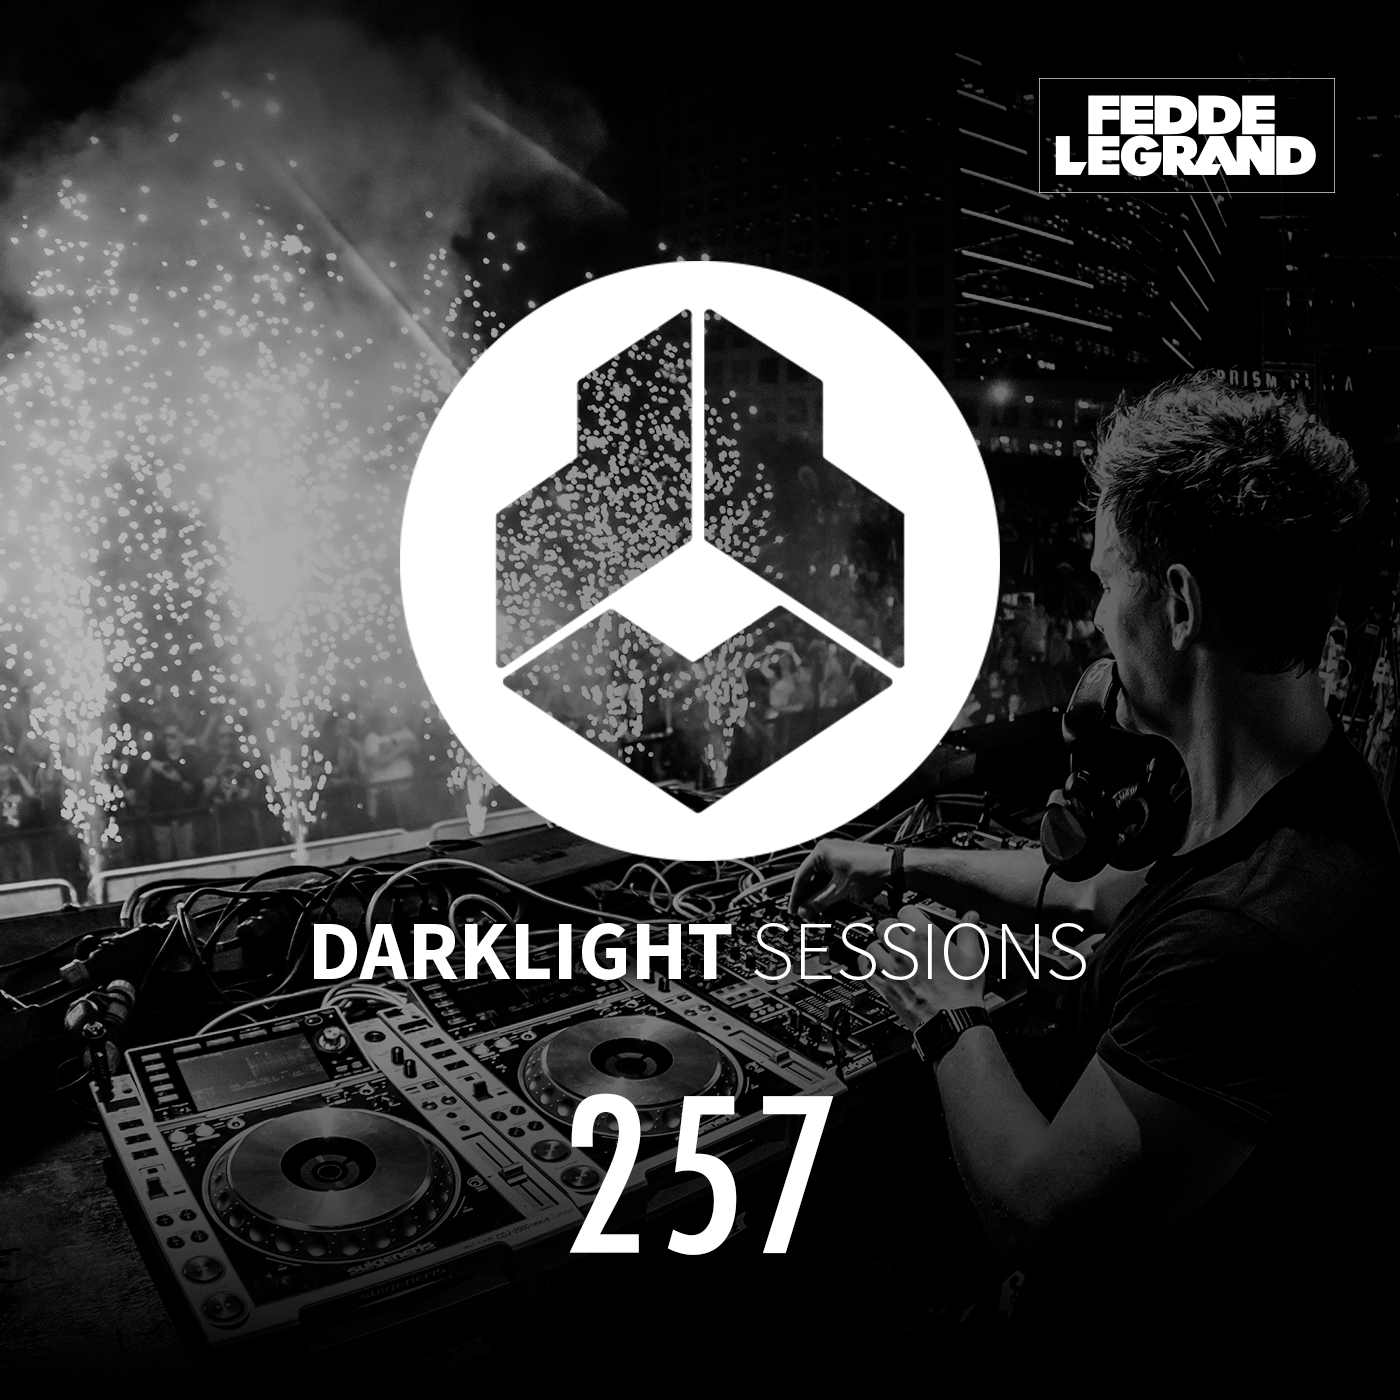 Darklight Sessions 257